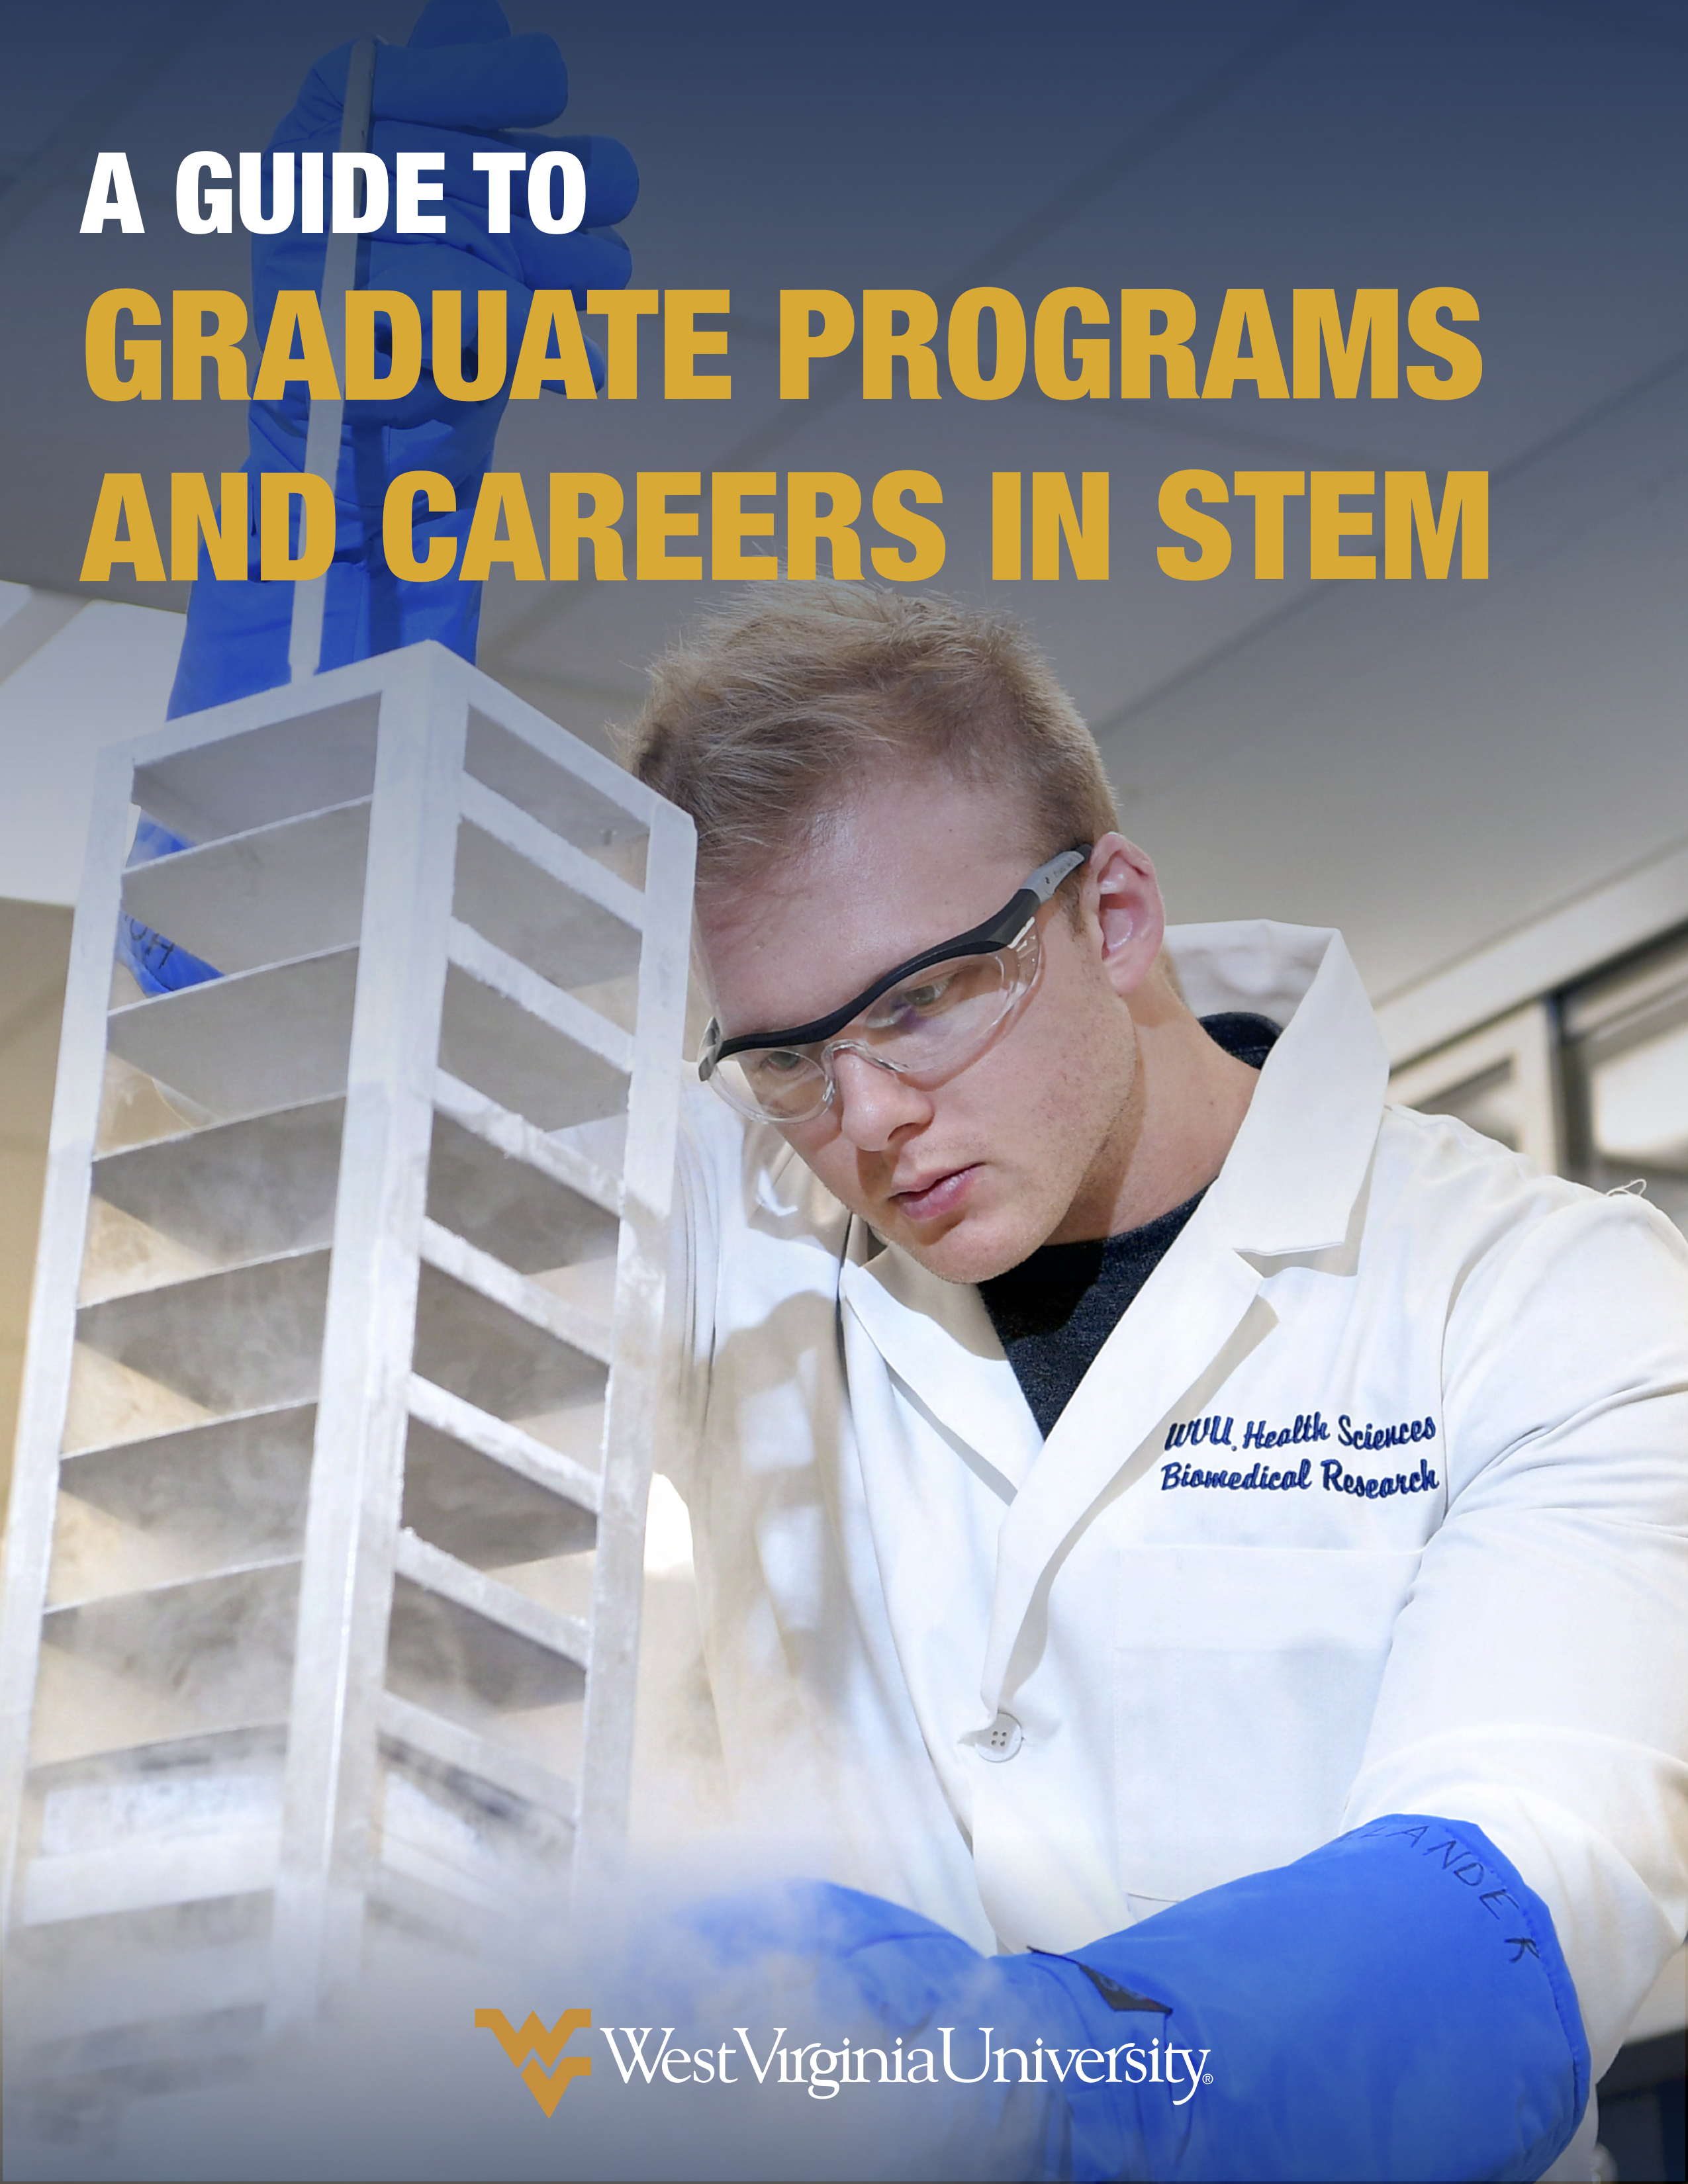 A Guide to Graduate Programs and Careers in STEM-thumbnail.png